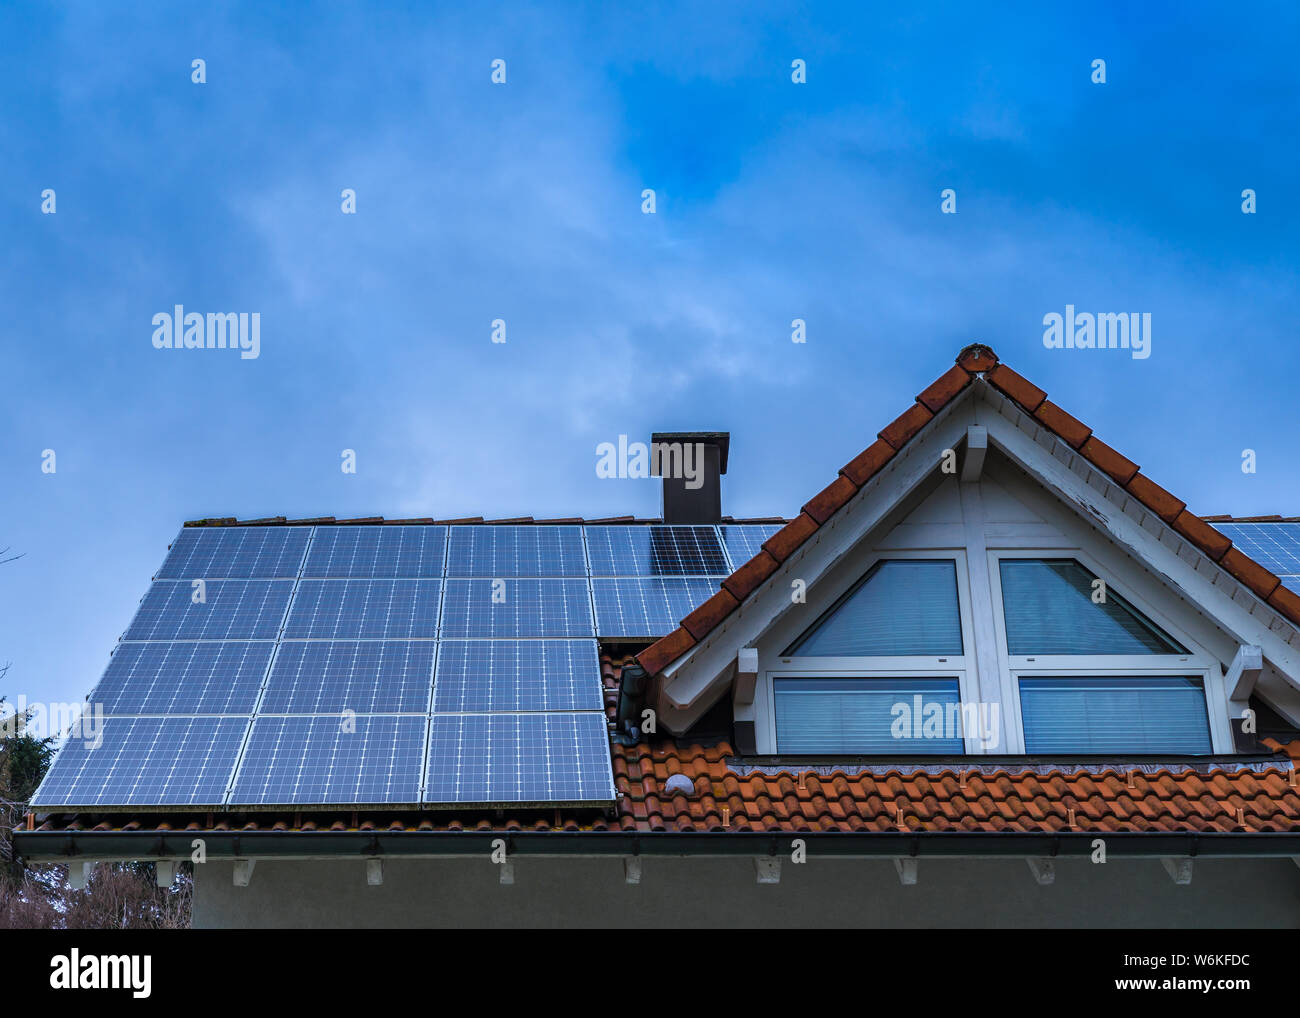 Red tile house roof coveredy by solar panels Stock Photo